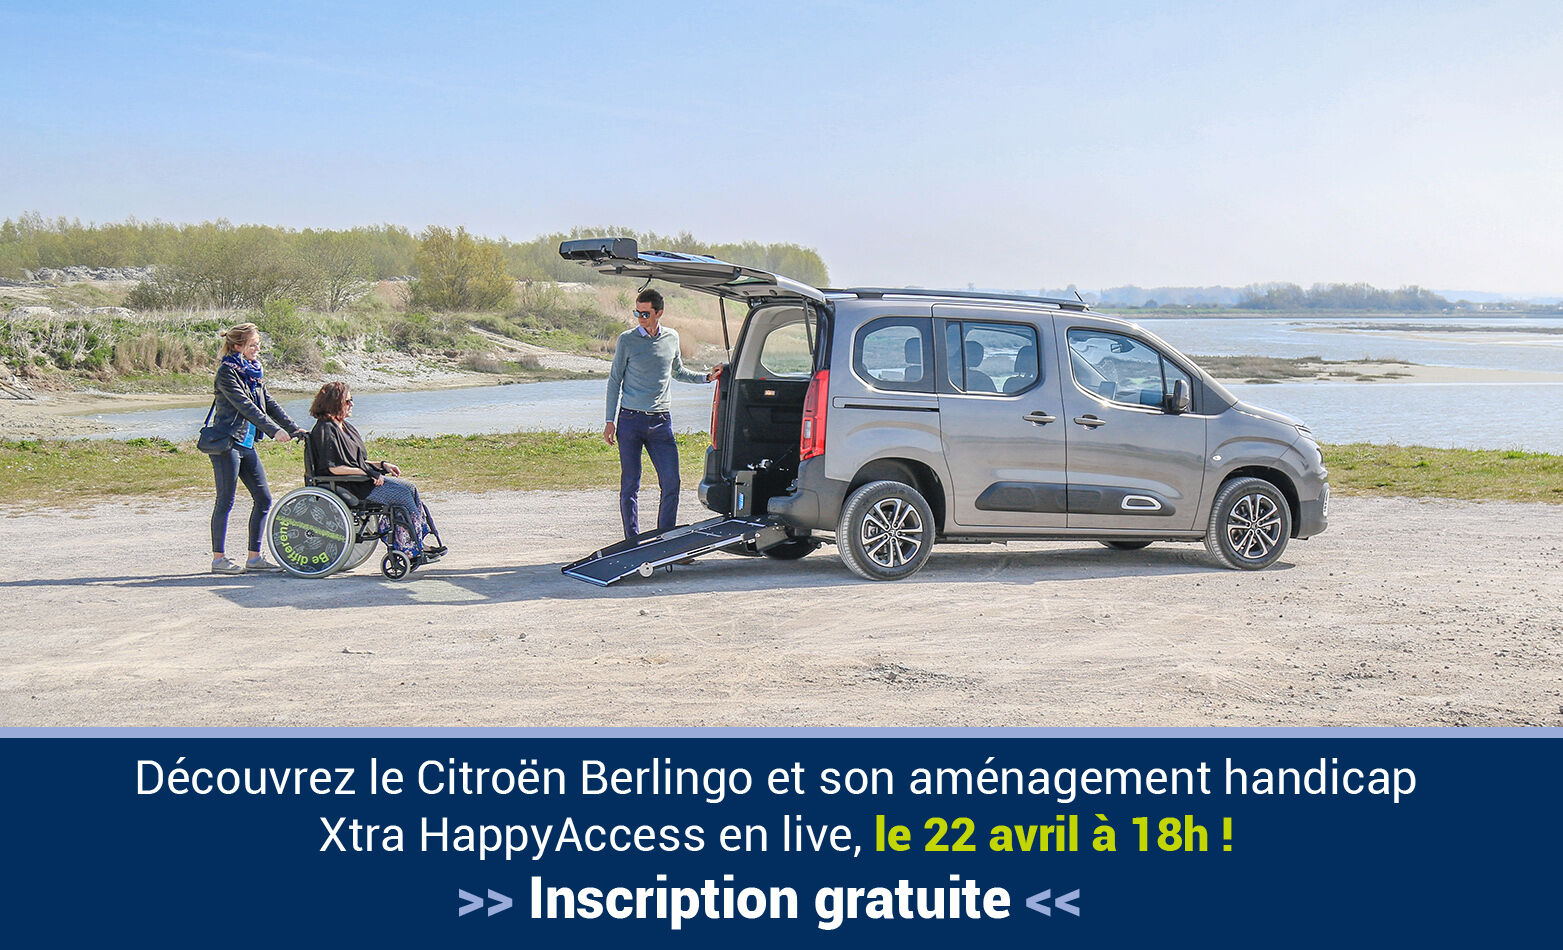 Handynamic Vous Présente Son Citroën Berlingo Xtra HappyAccess… En Live !